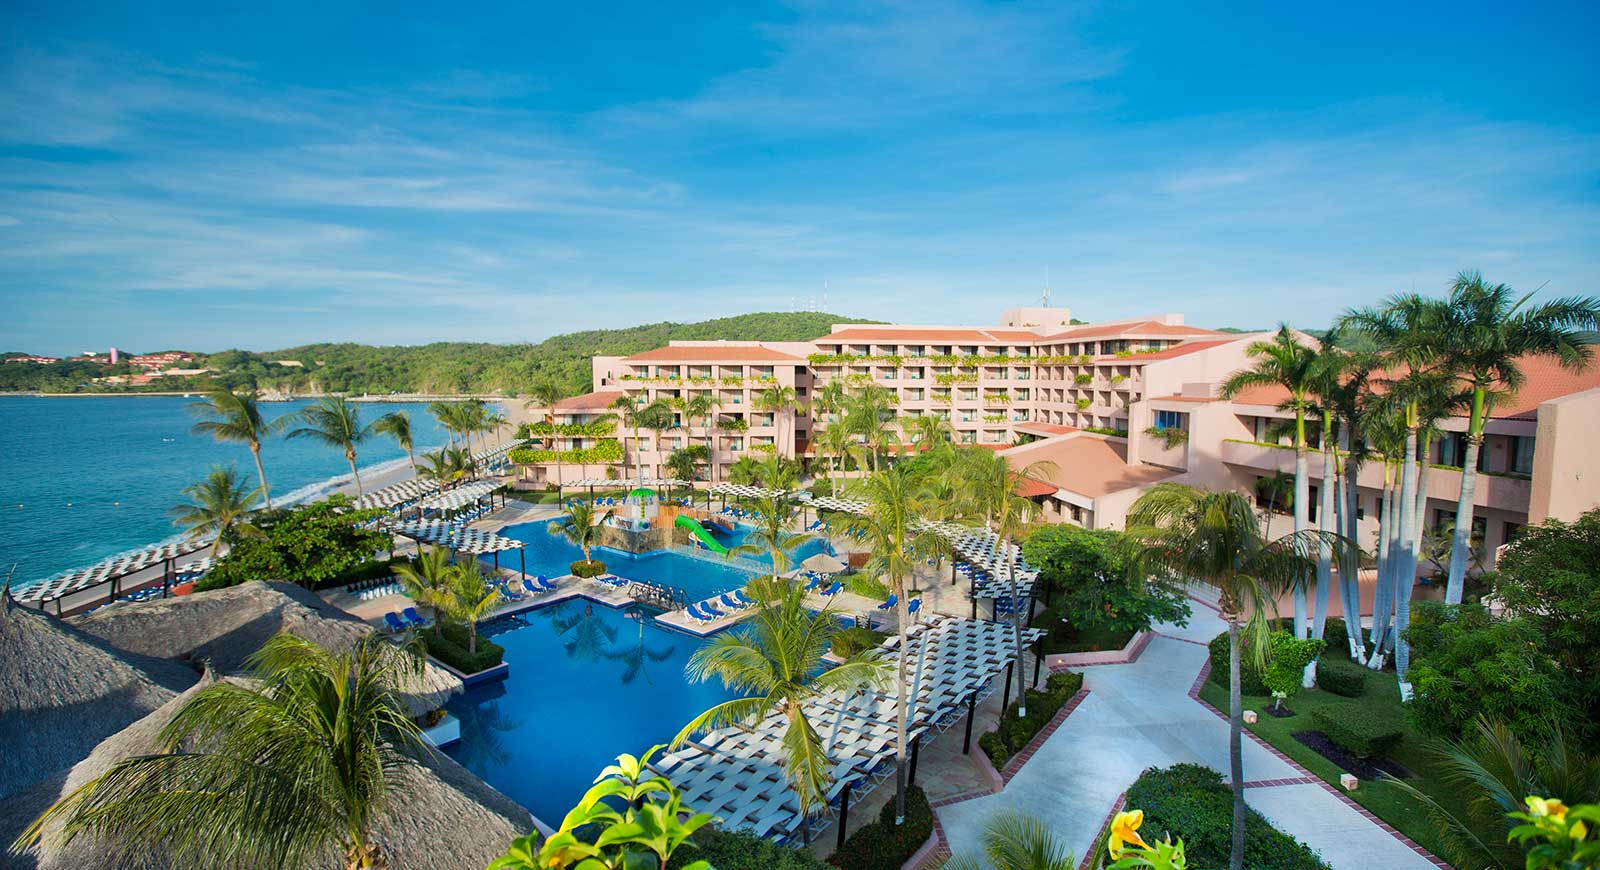 68-views-6-hotel-barcelo-huatulco-beach_tcm7-31221